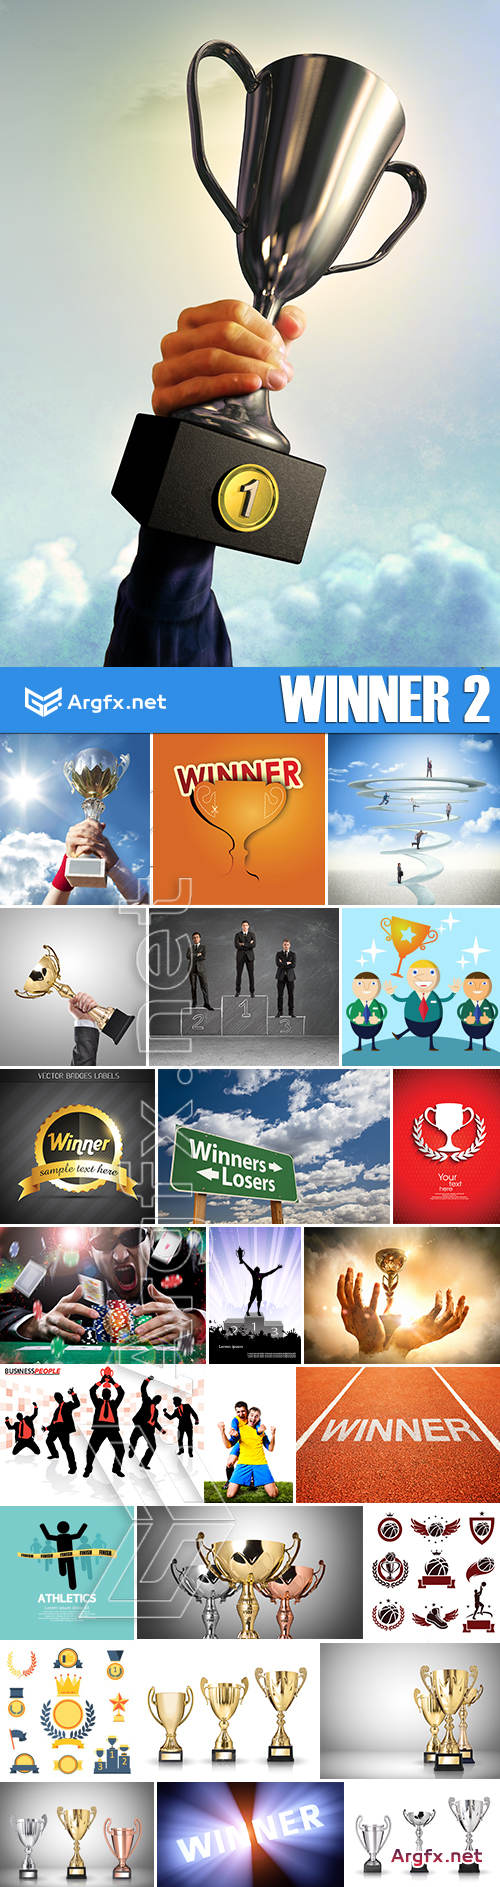 Stock Photos - Winner 2, 9xEPS 16xJPG